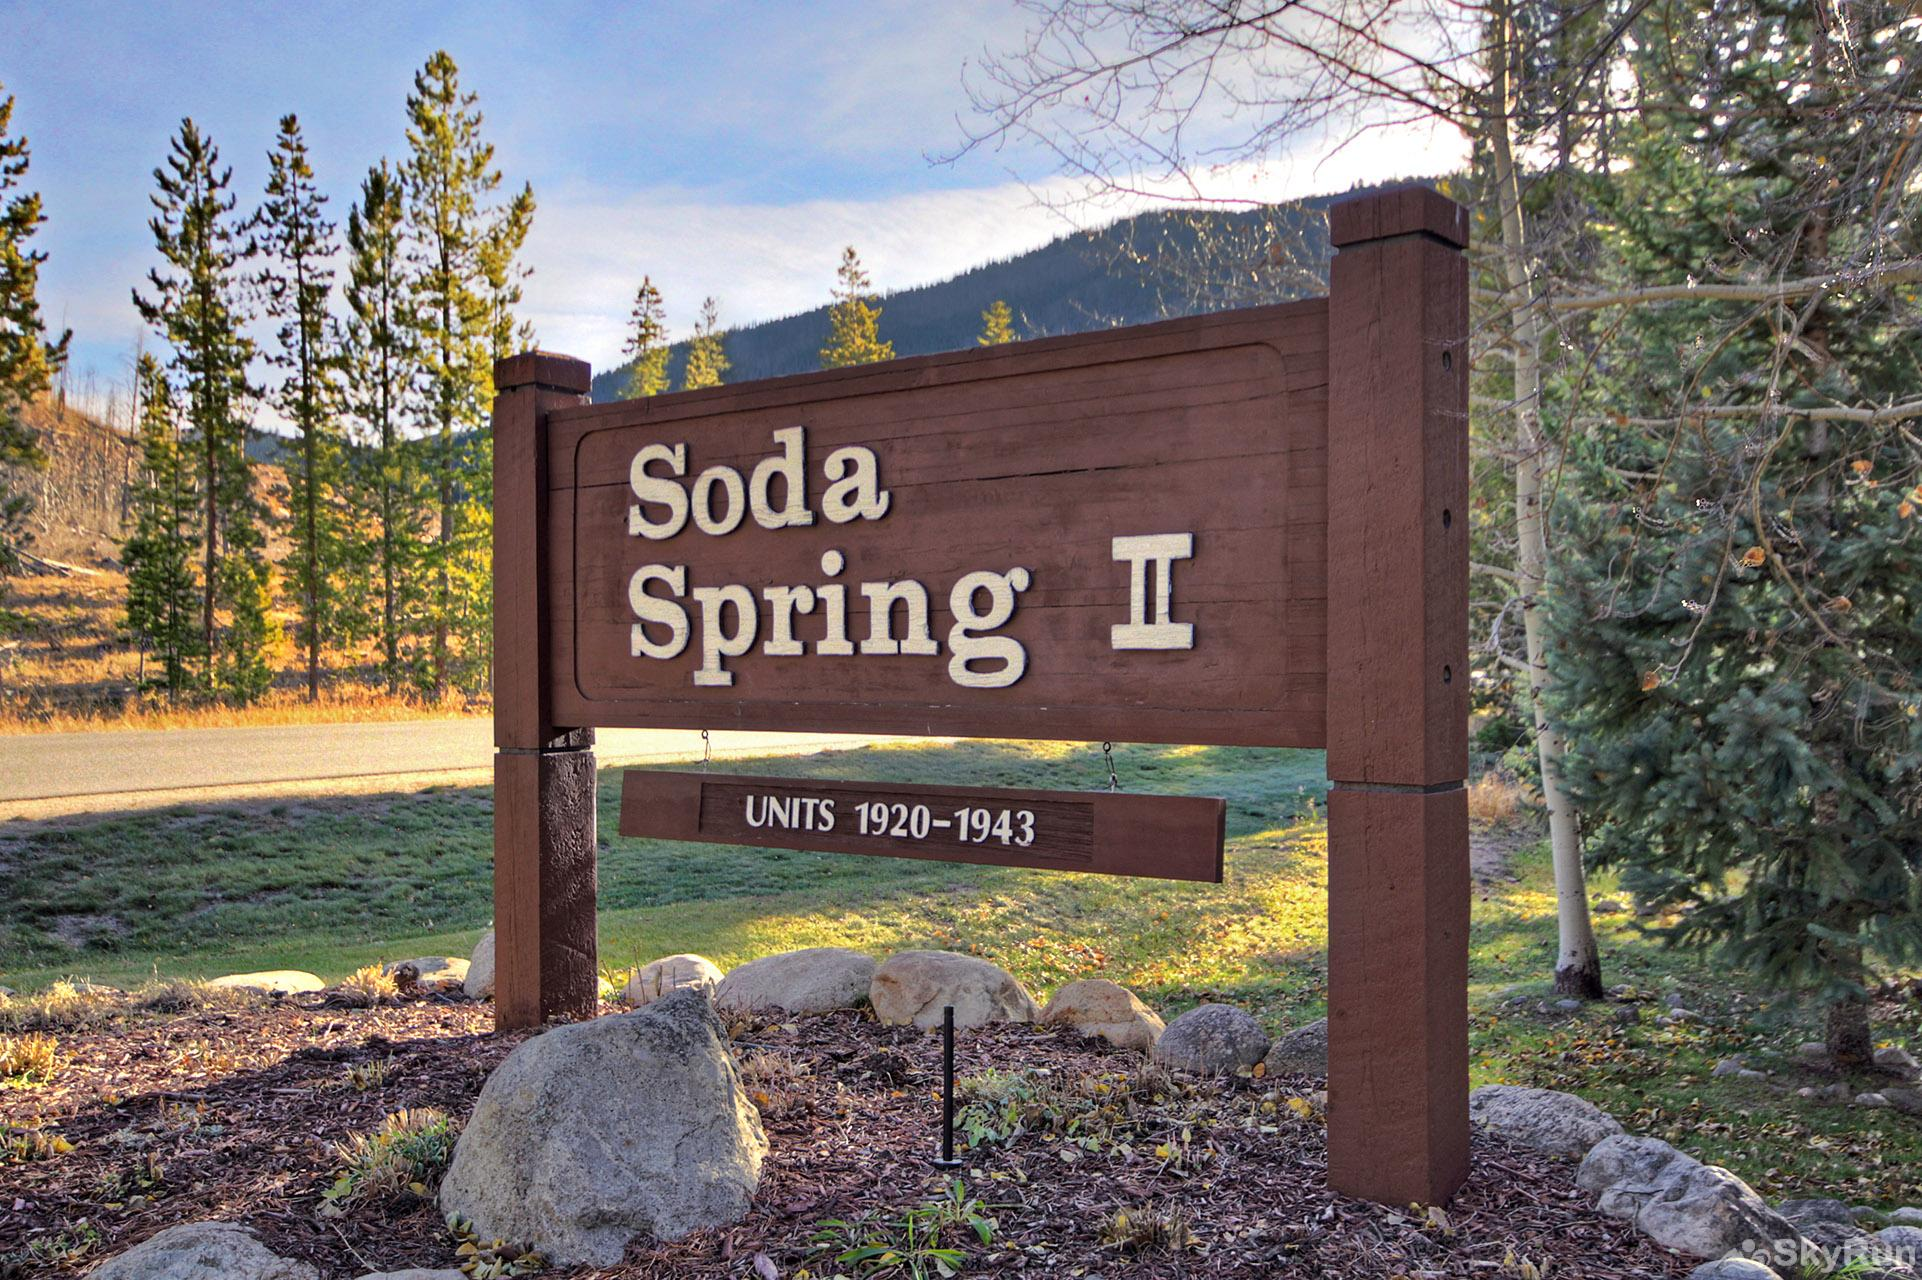 1926 Soda Springs II Soda Springs